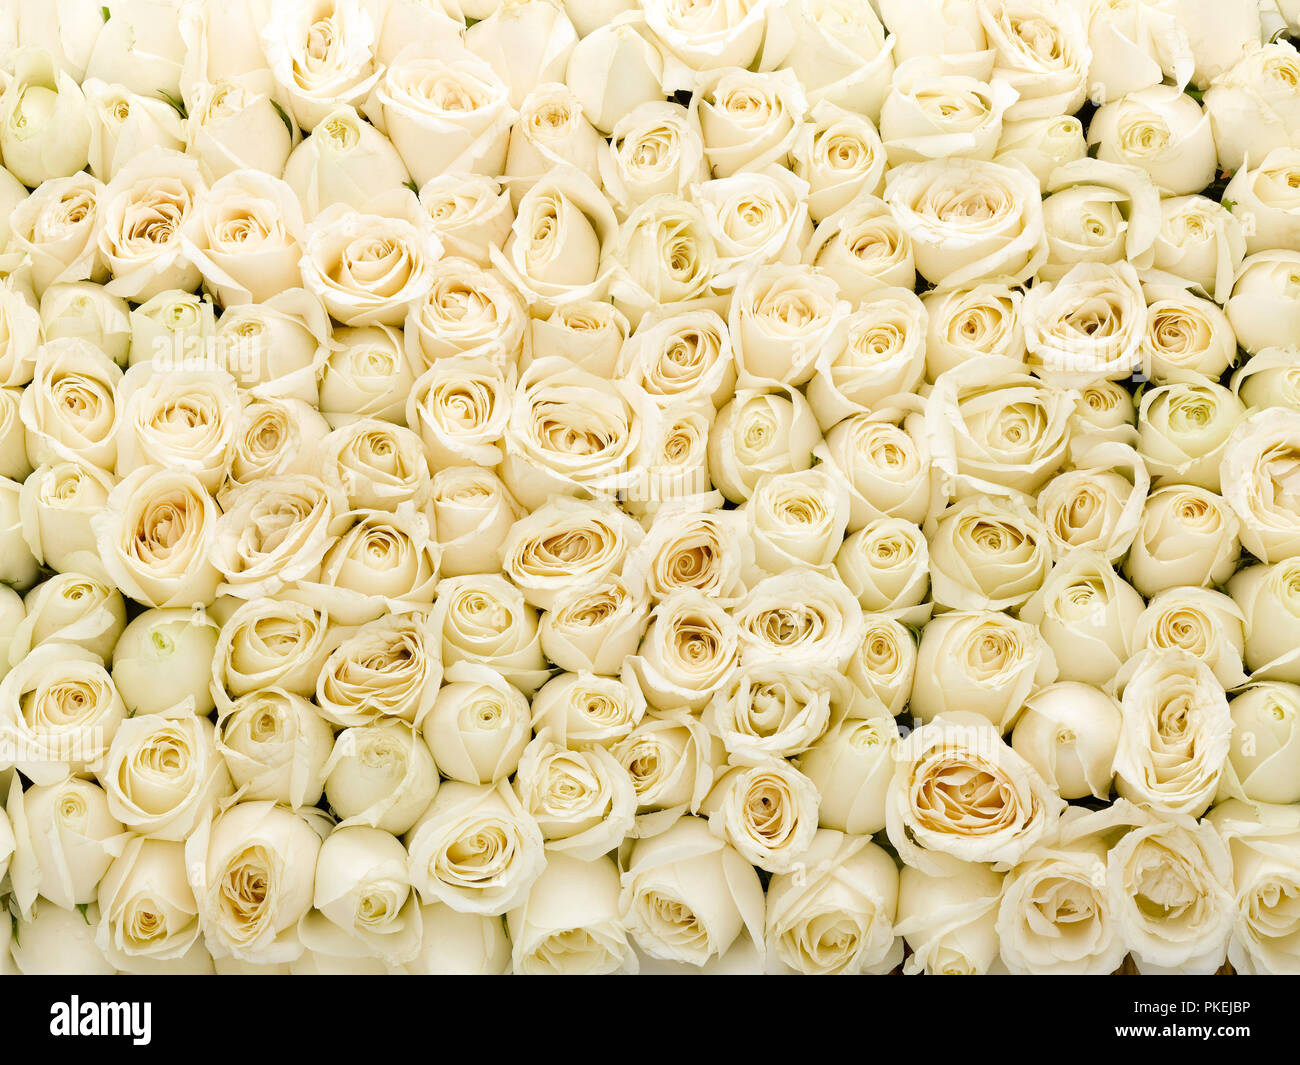 Life Is A Bed Of Roses Stock Photos Life Is A Bed Of Roses Stock